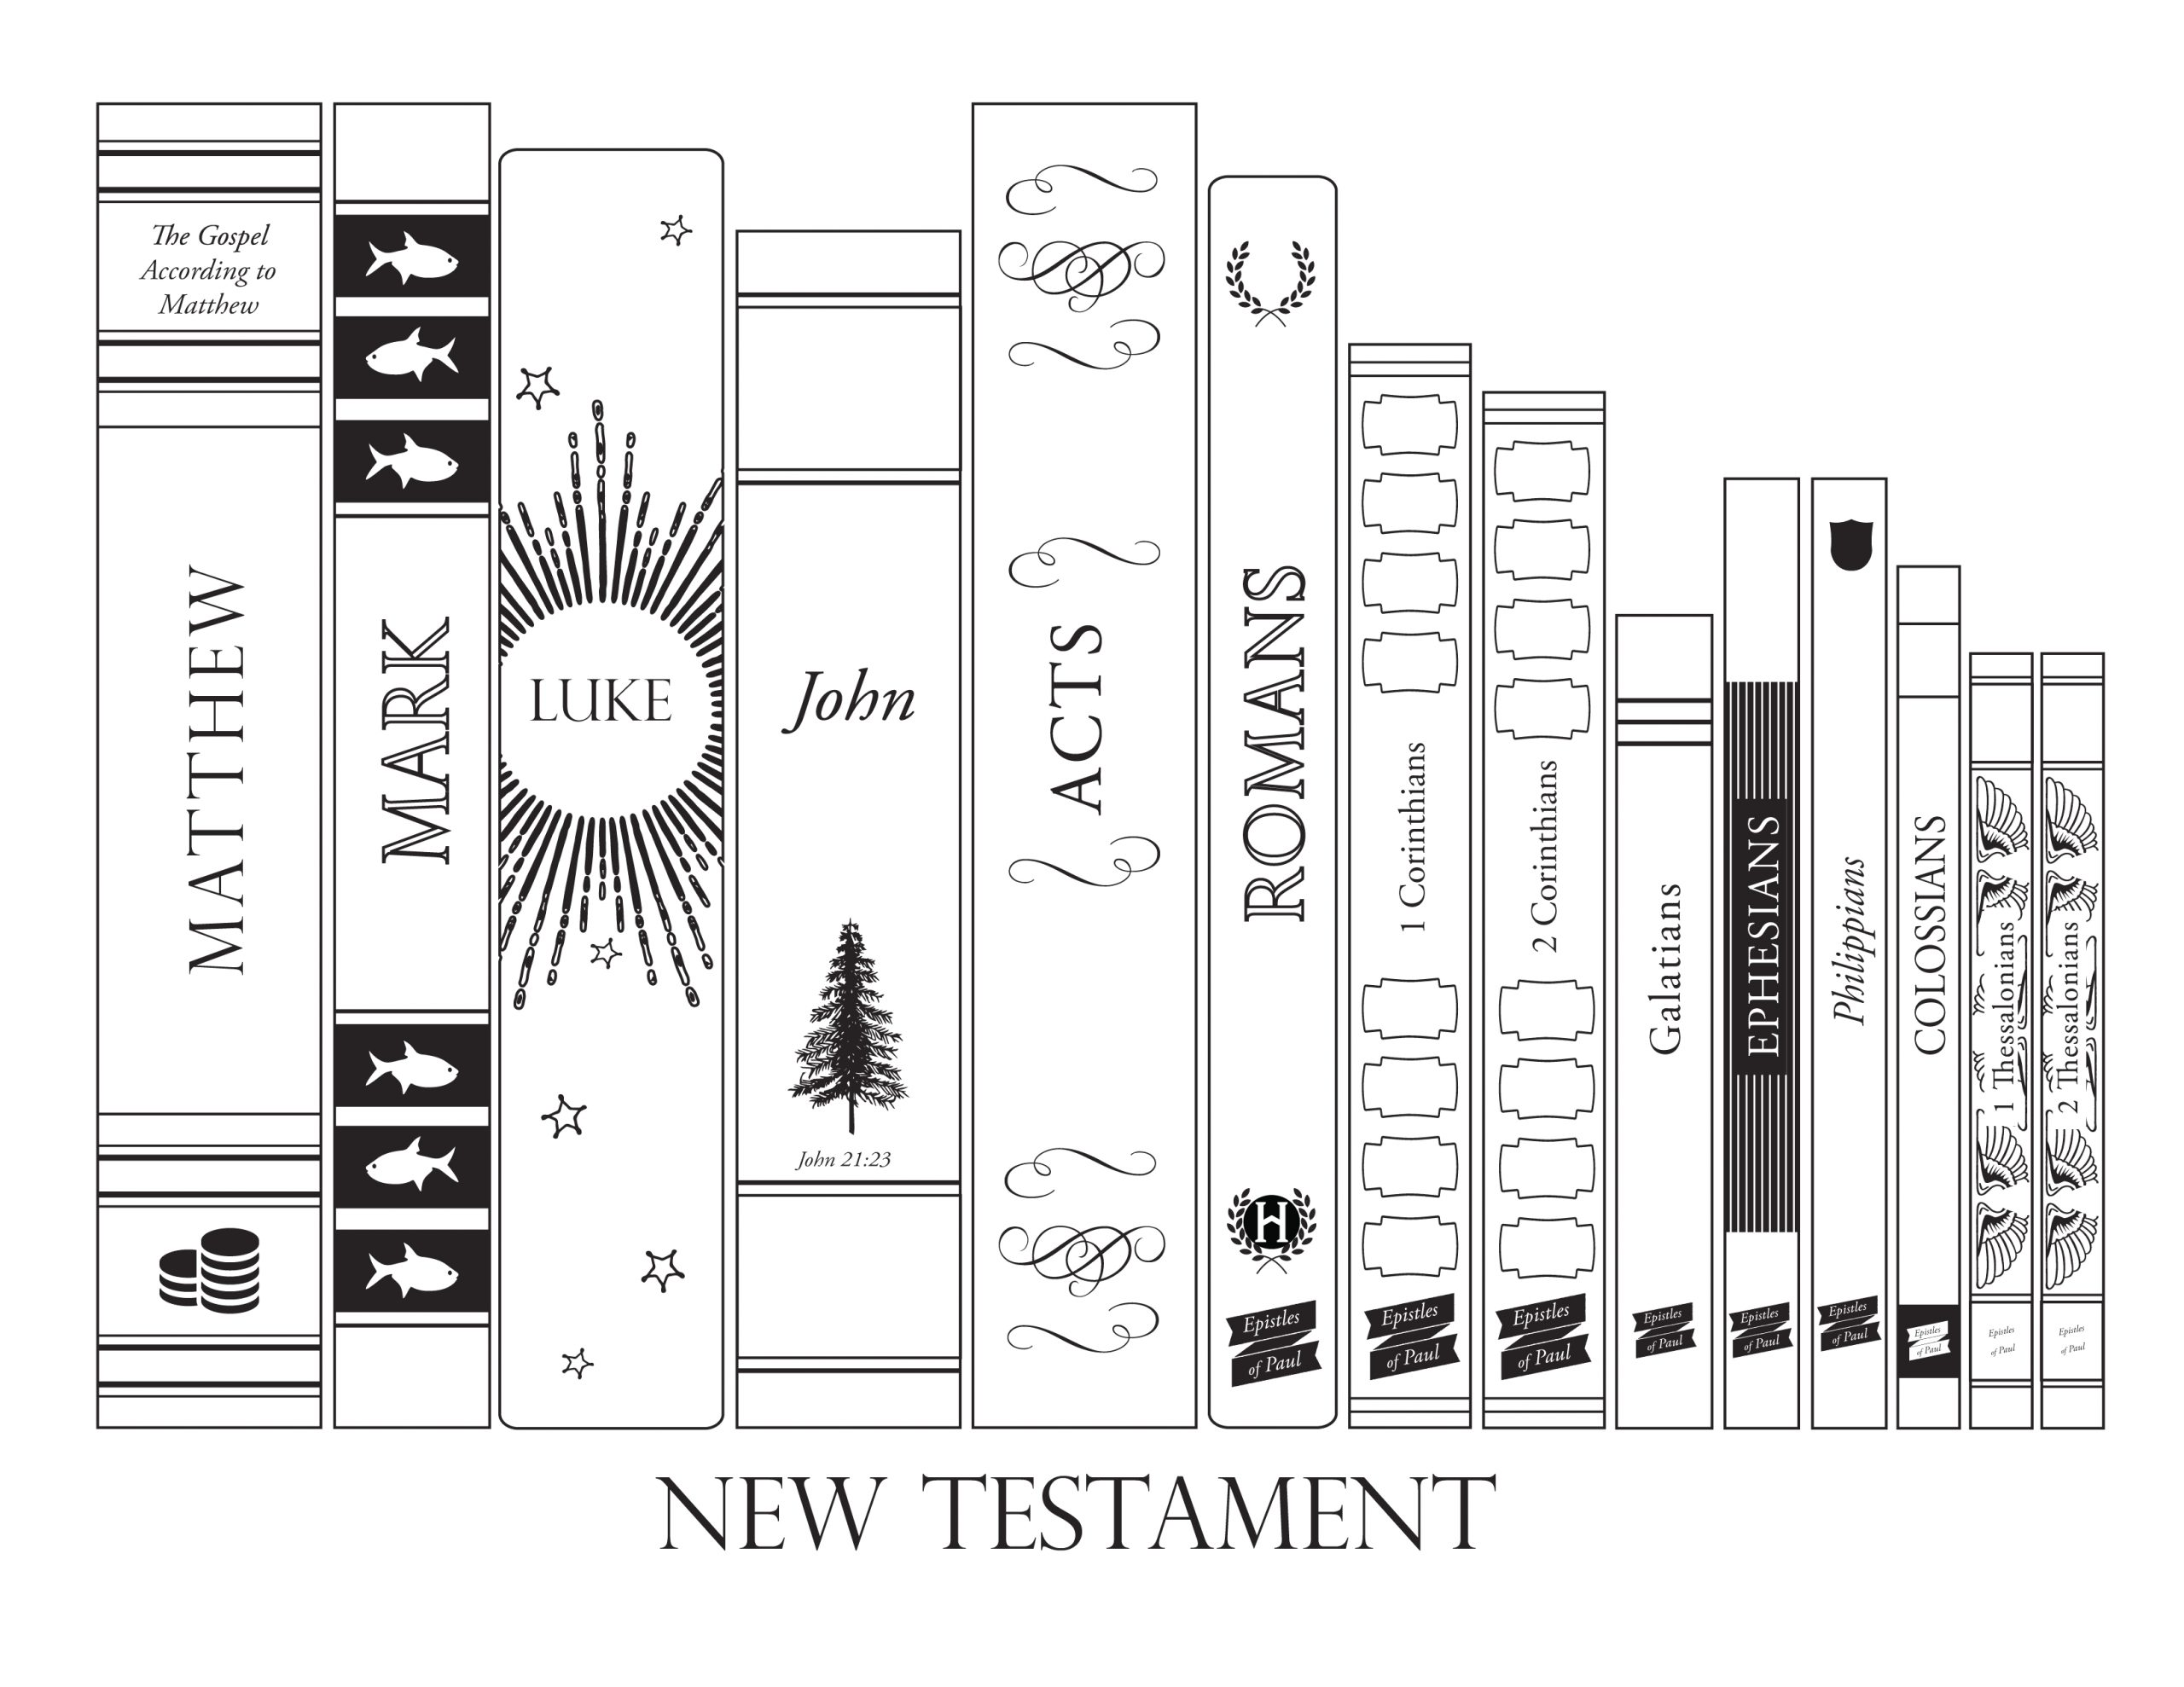 New Testament Books Of the Bible Coloring Pages New Testament Bookshelf – the Gospel Home